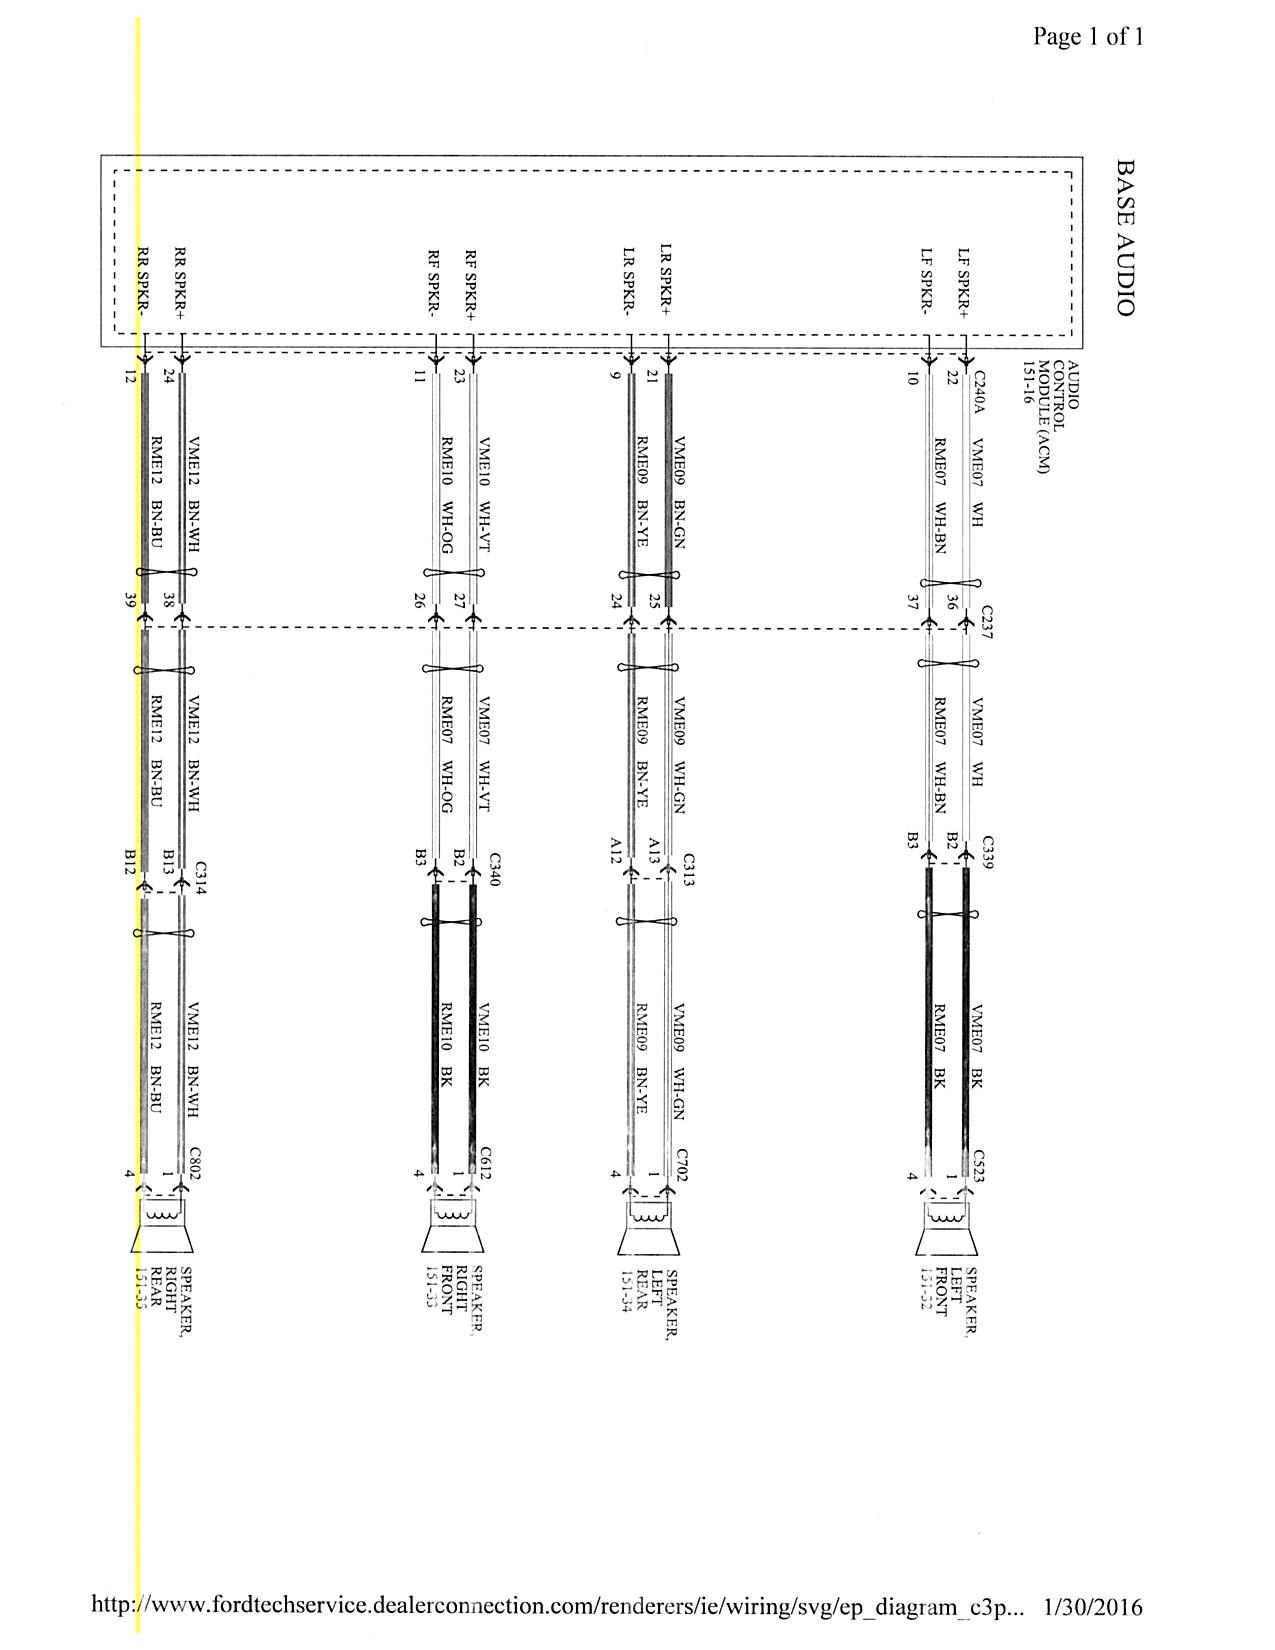 Ford Focus Stereo Wiring Diagram Data Dodge Omni 2015 Mk3 5 Forum 2008